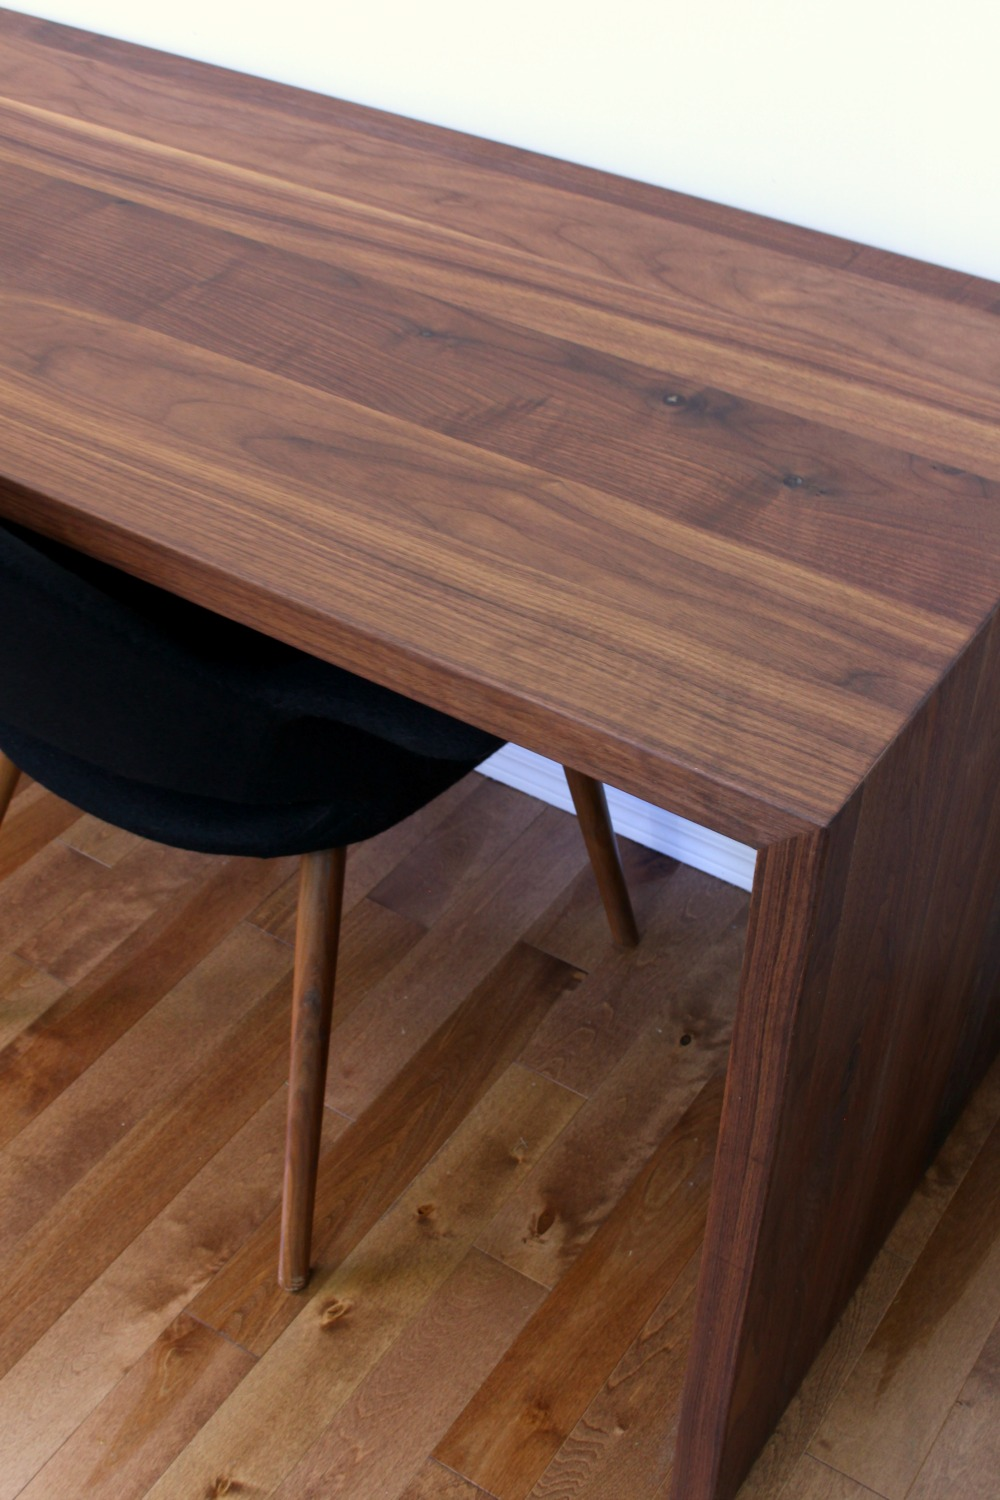 Diy Solid Walnut Waterfall Desk For Two Dans Le Lakehouse